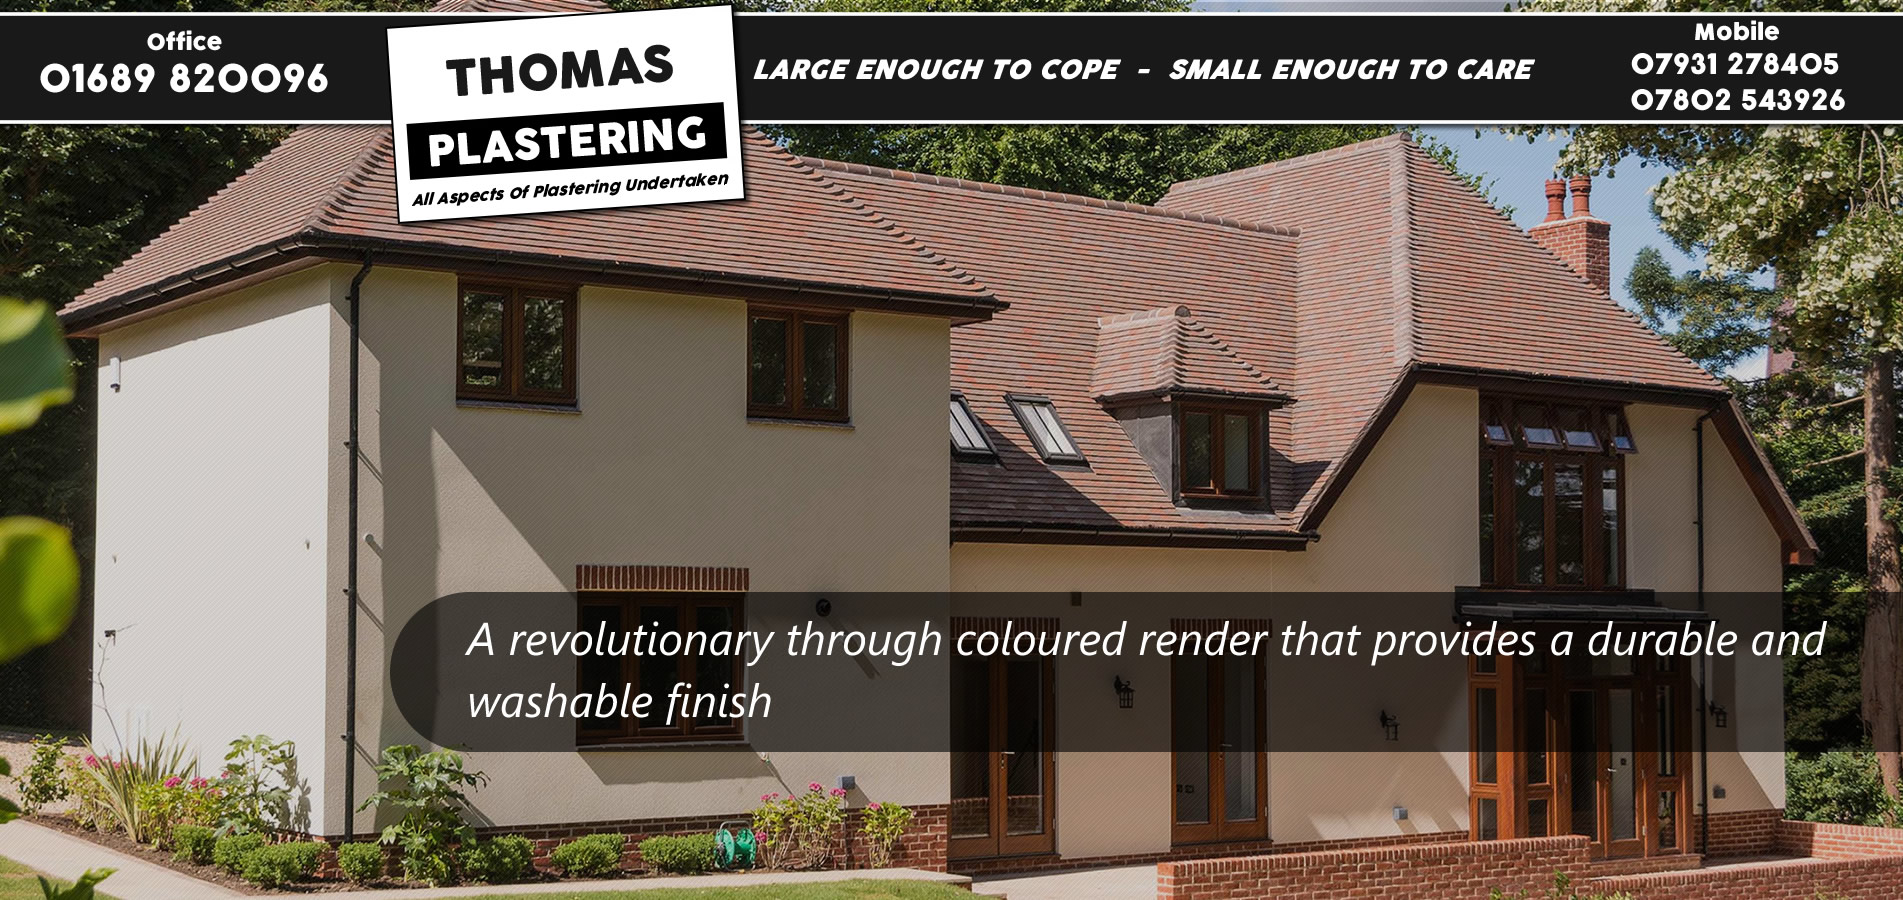 plasterers plastering services